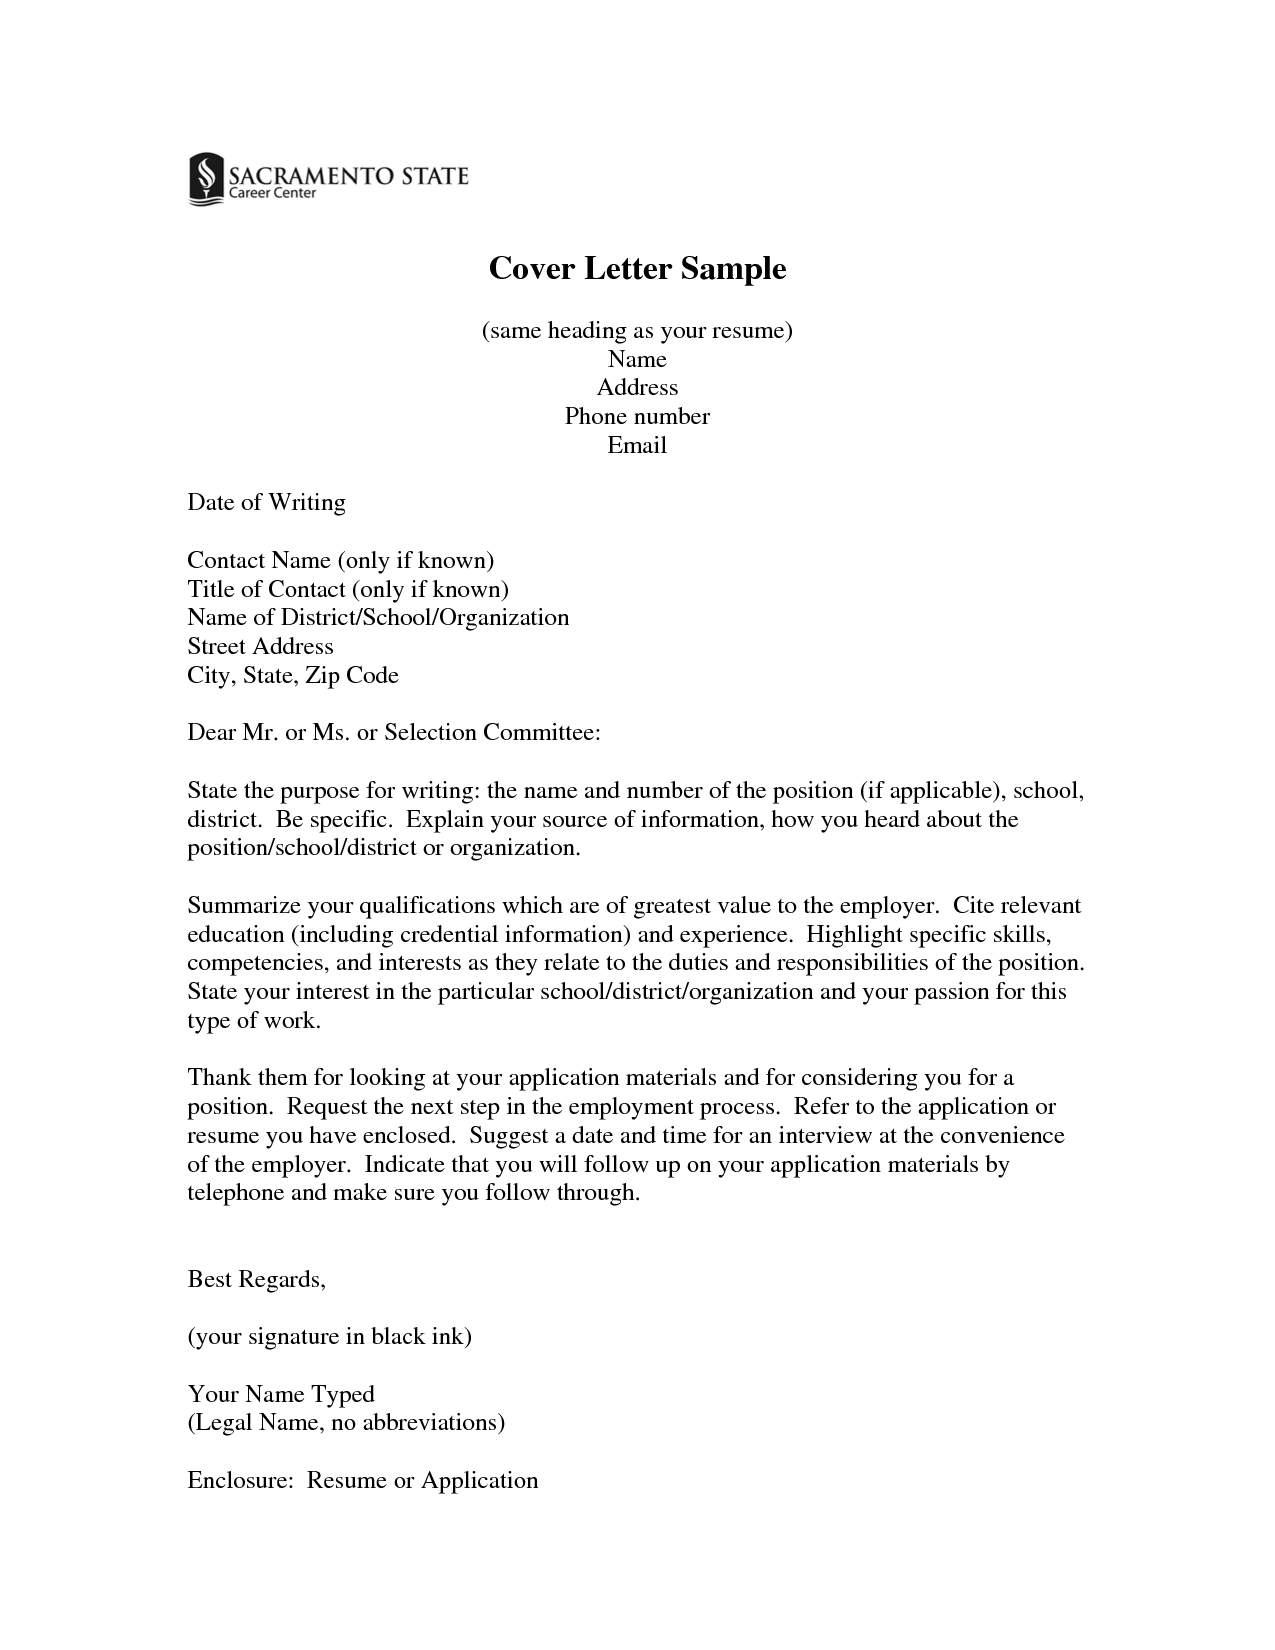 Same cover letters for resume cover letter sample same heading same cover letters for resume cover letter sample same heading as your resume name address thecheapjerseys Image collections